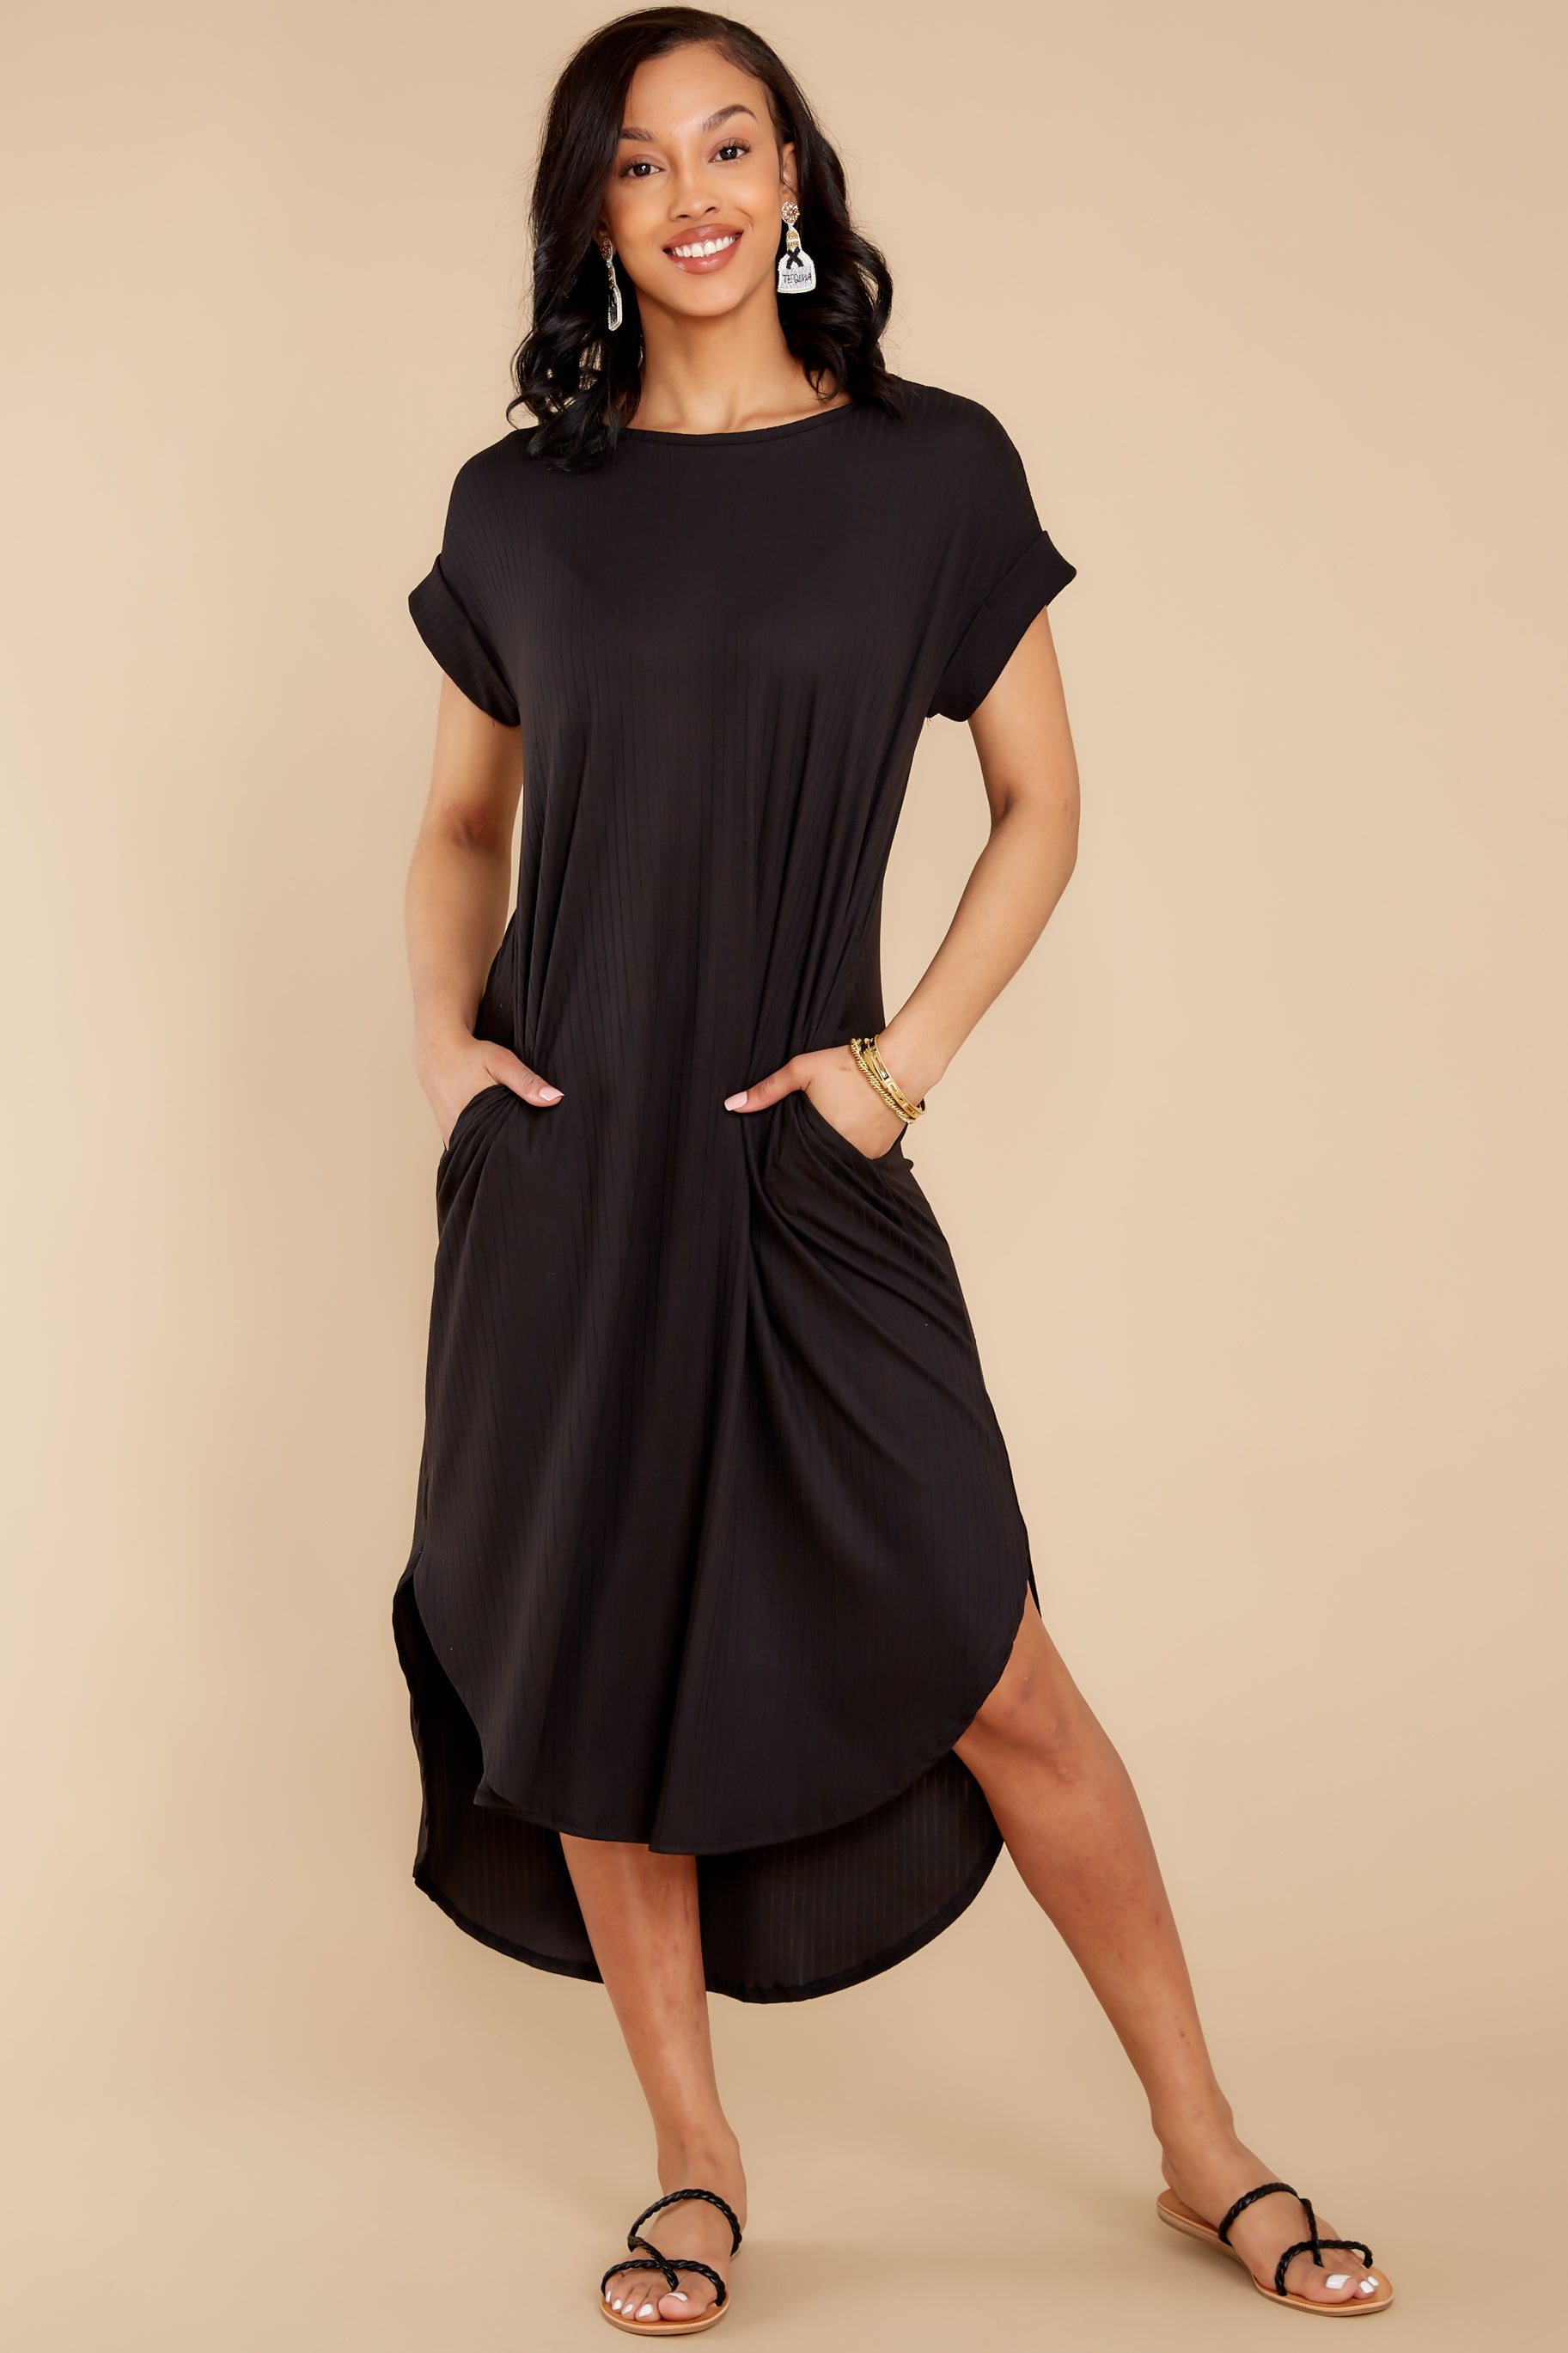 5 Come Away With Me Black Midi Dress at reddress.com